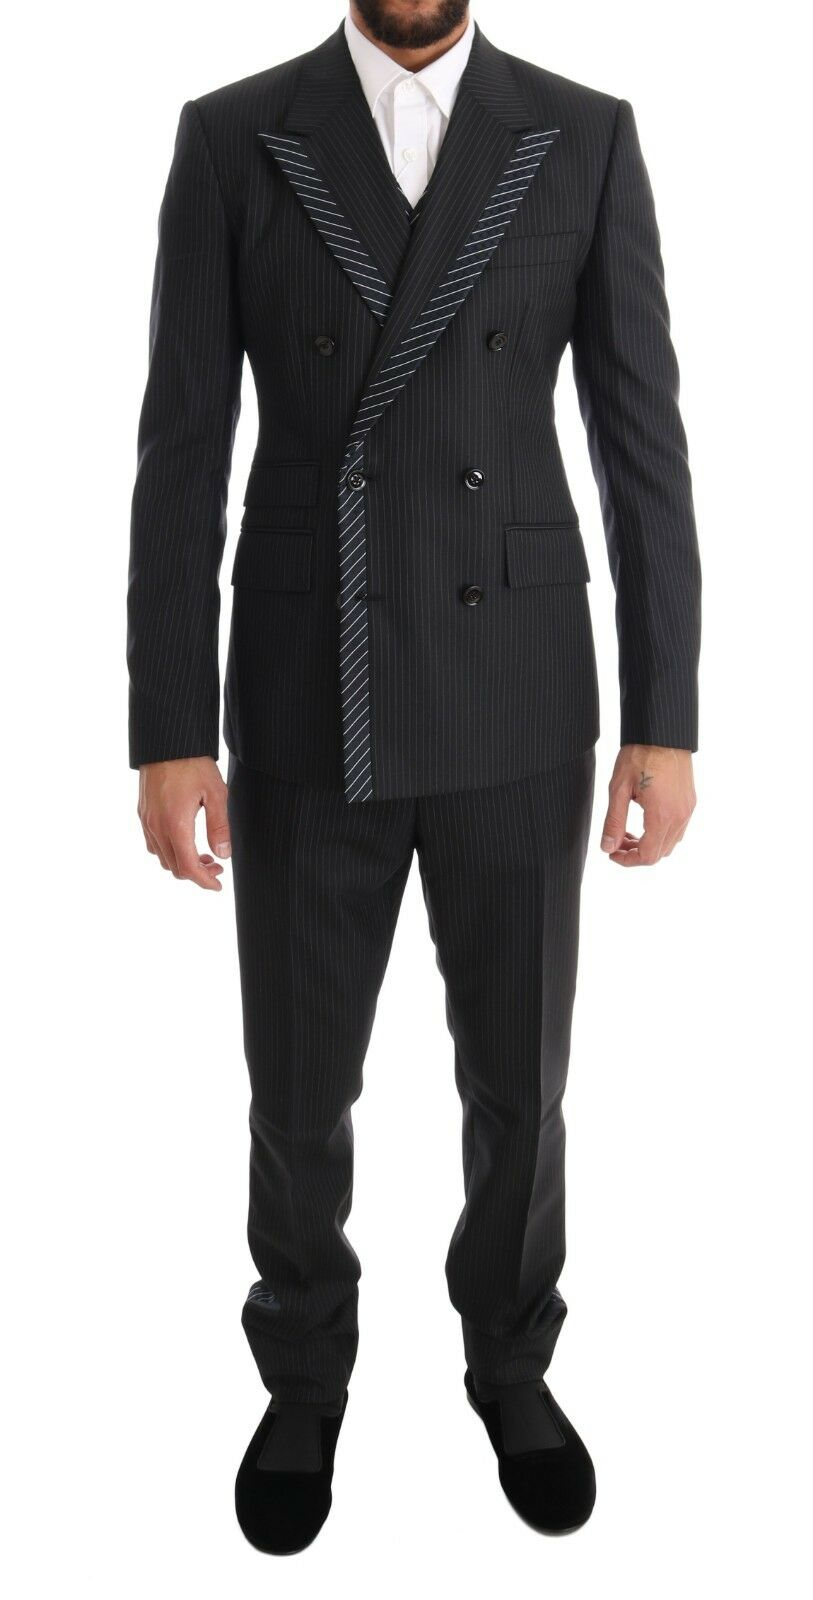 NEW 3000 DOLCE & GABBANA Suit Tuxedo grau Double Breasted 3 Piece EU48 /US38/ M